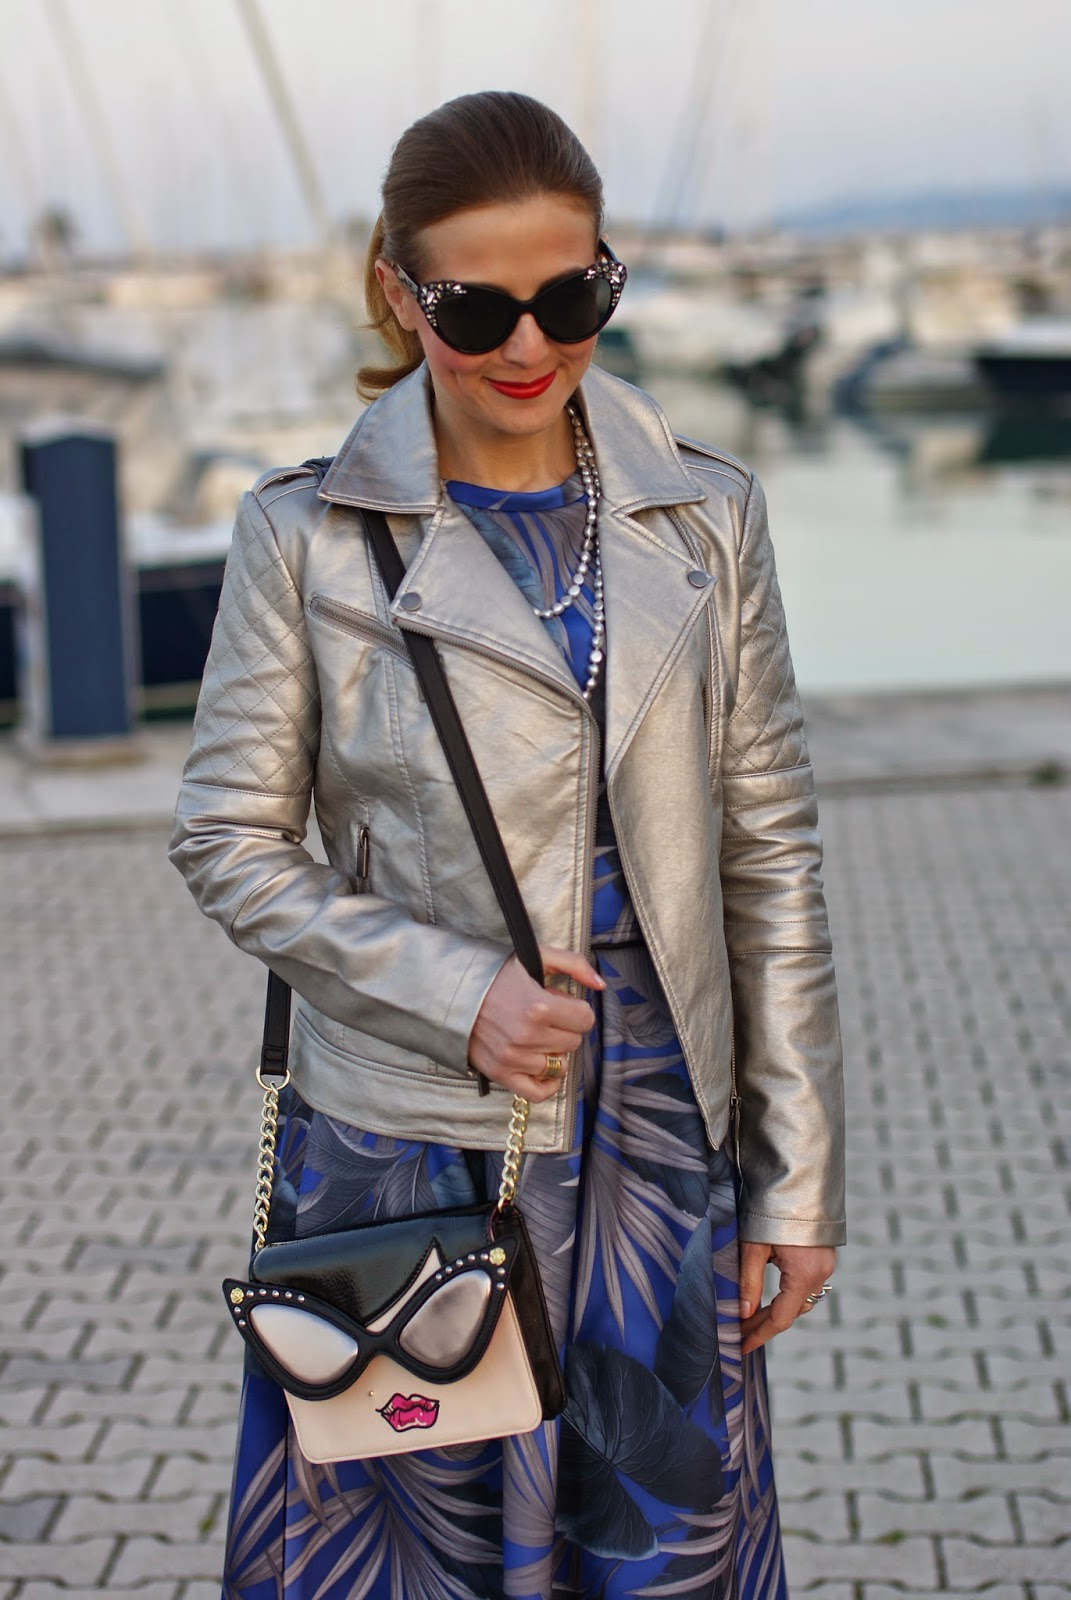 Betsey Johnson crossbody bag, palm print scuba skirt, dsquared2 cay eye sunglasses, Pearl Clasp necklace, Asos silver jacket, Fashion and Cookies fashion blog, fashion blogger